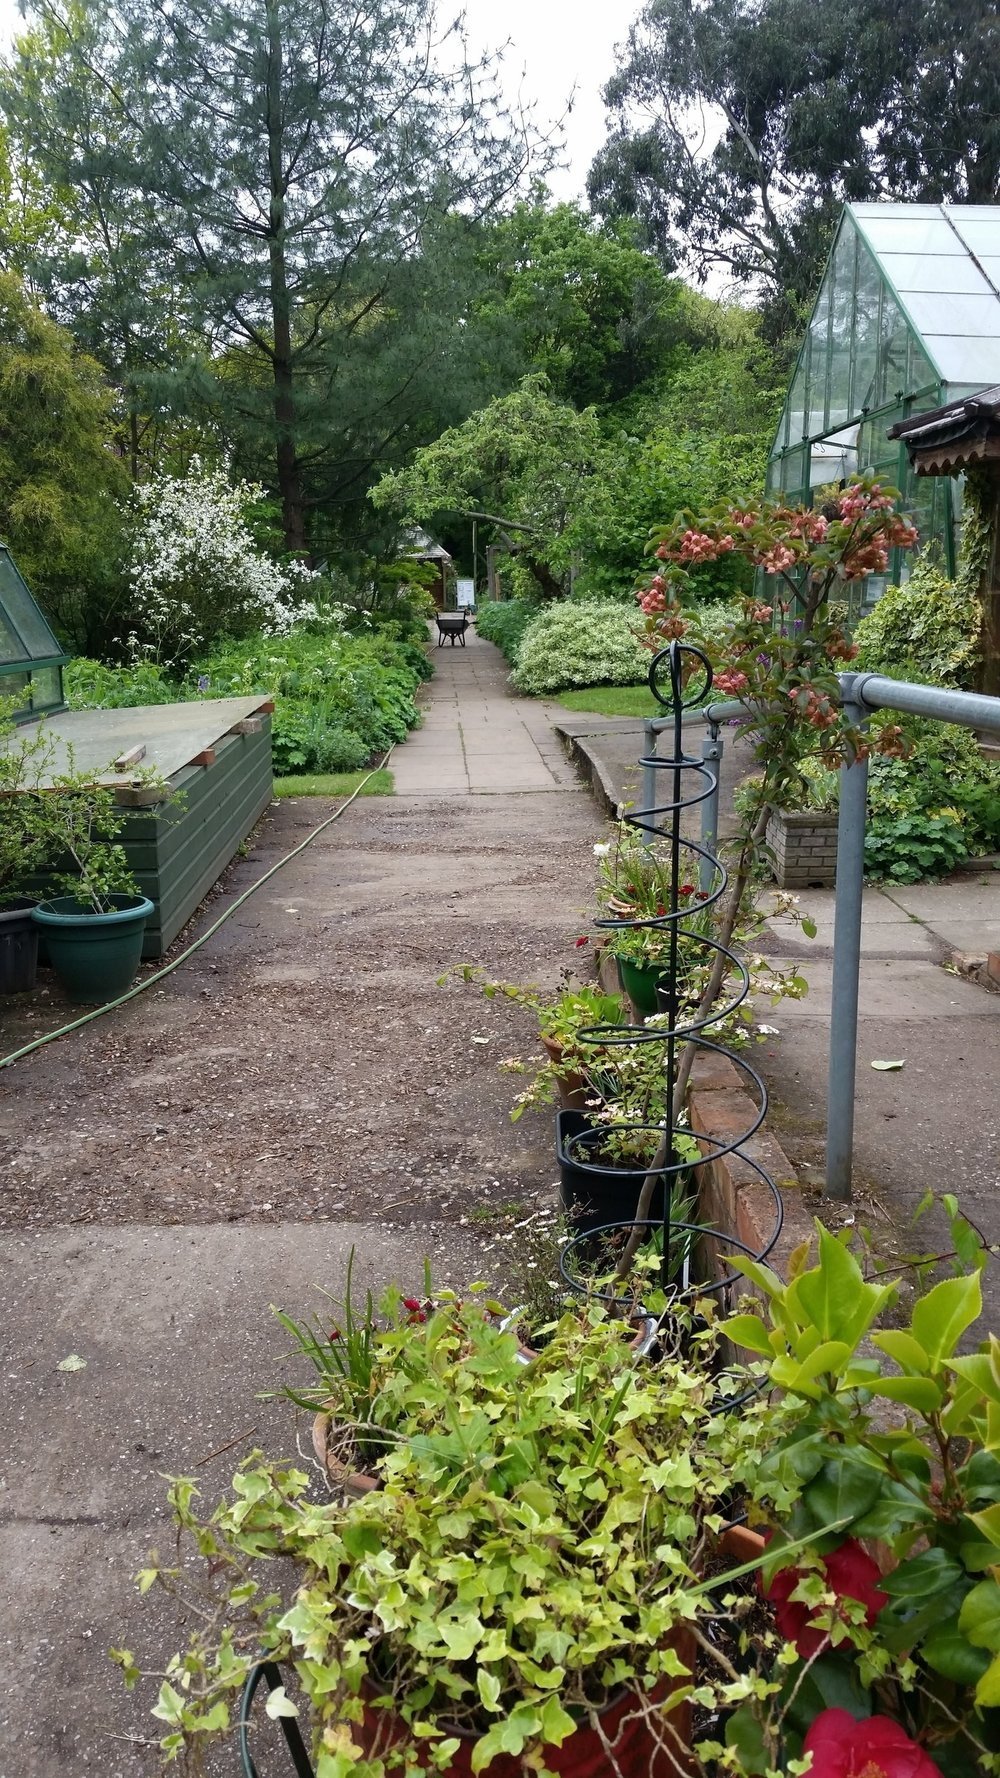 Martineau_garden_main_path.jpg